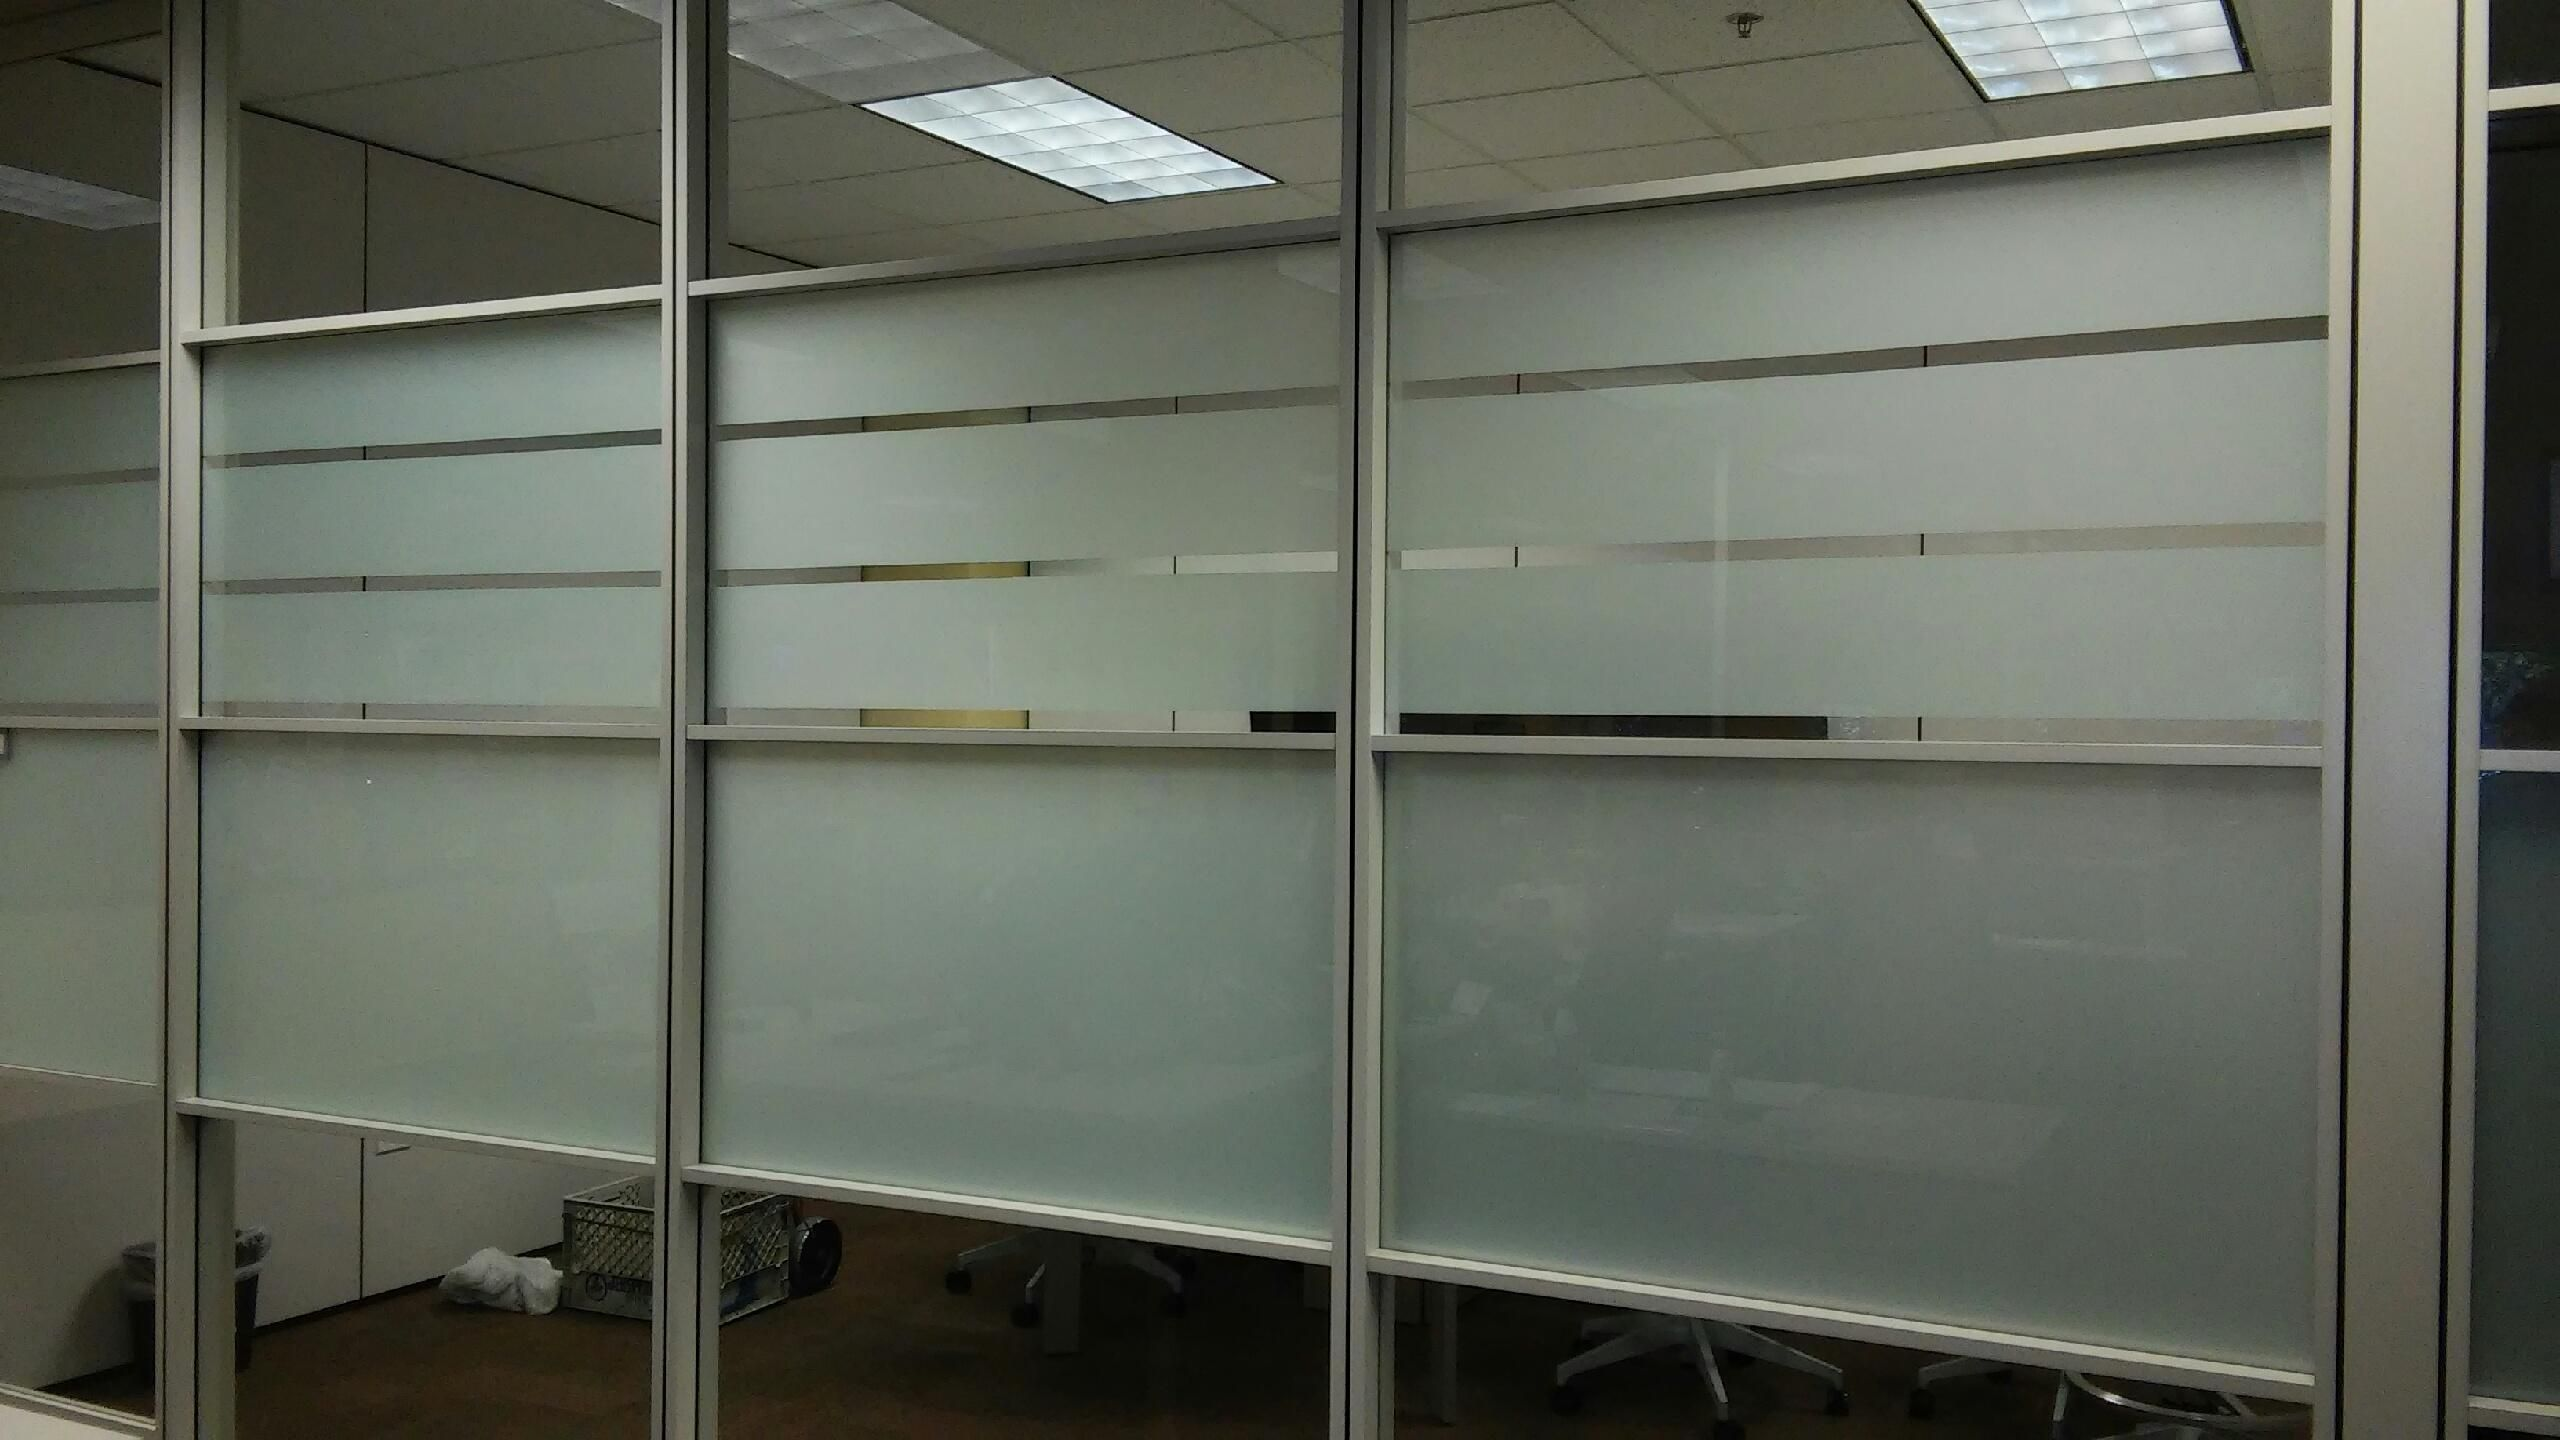 3M Milano window film used at First Citizens Bank Window